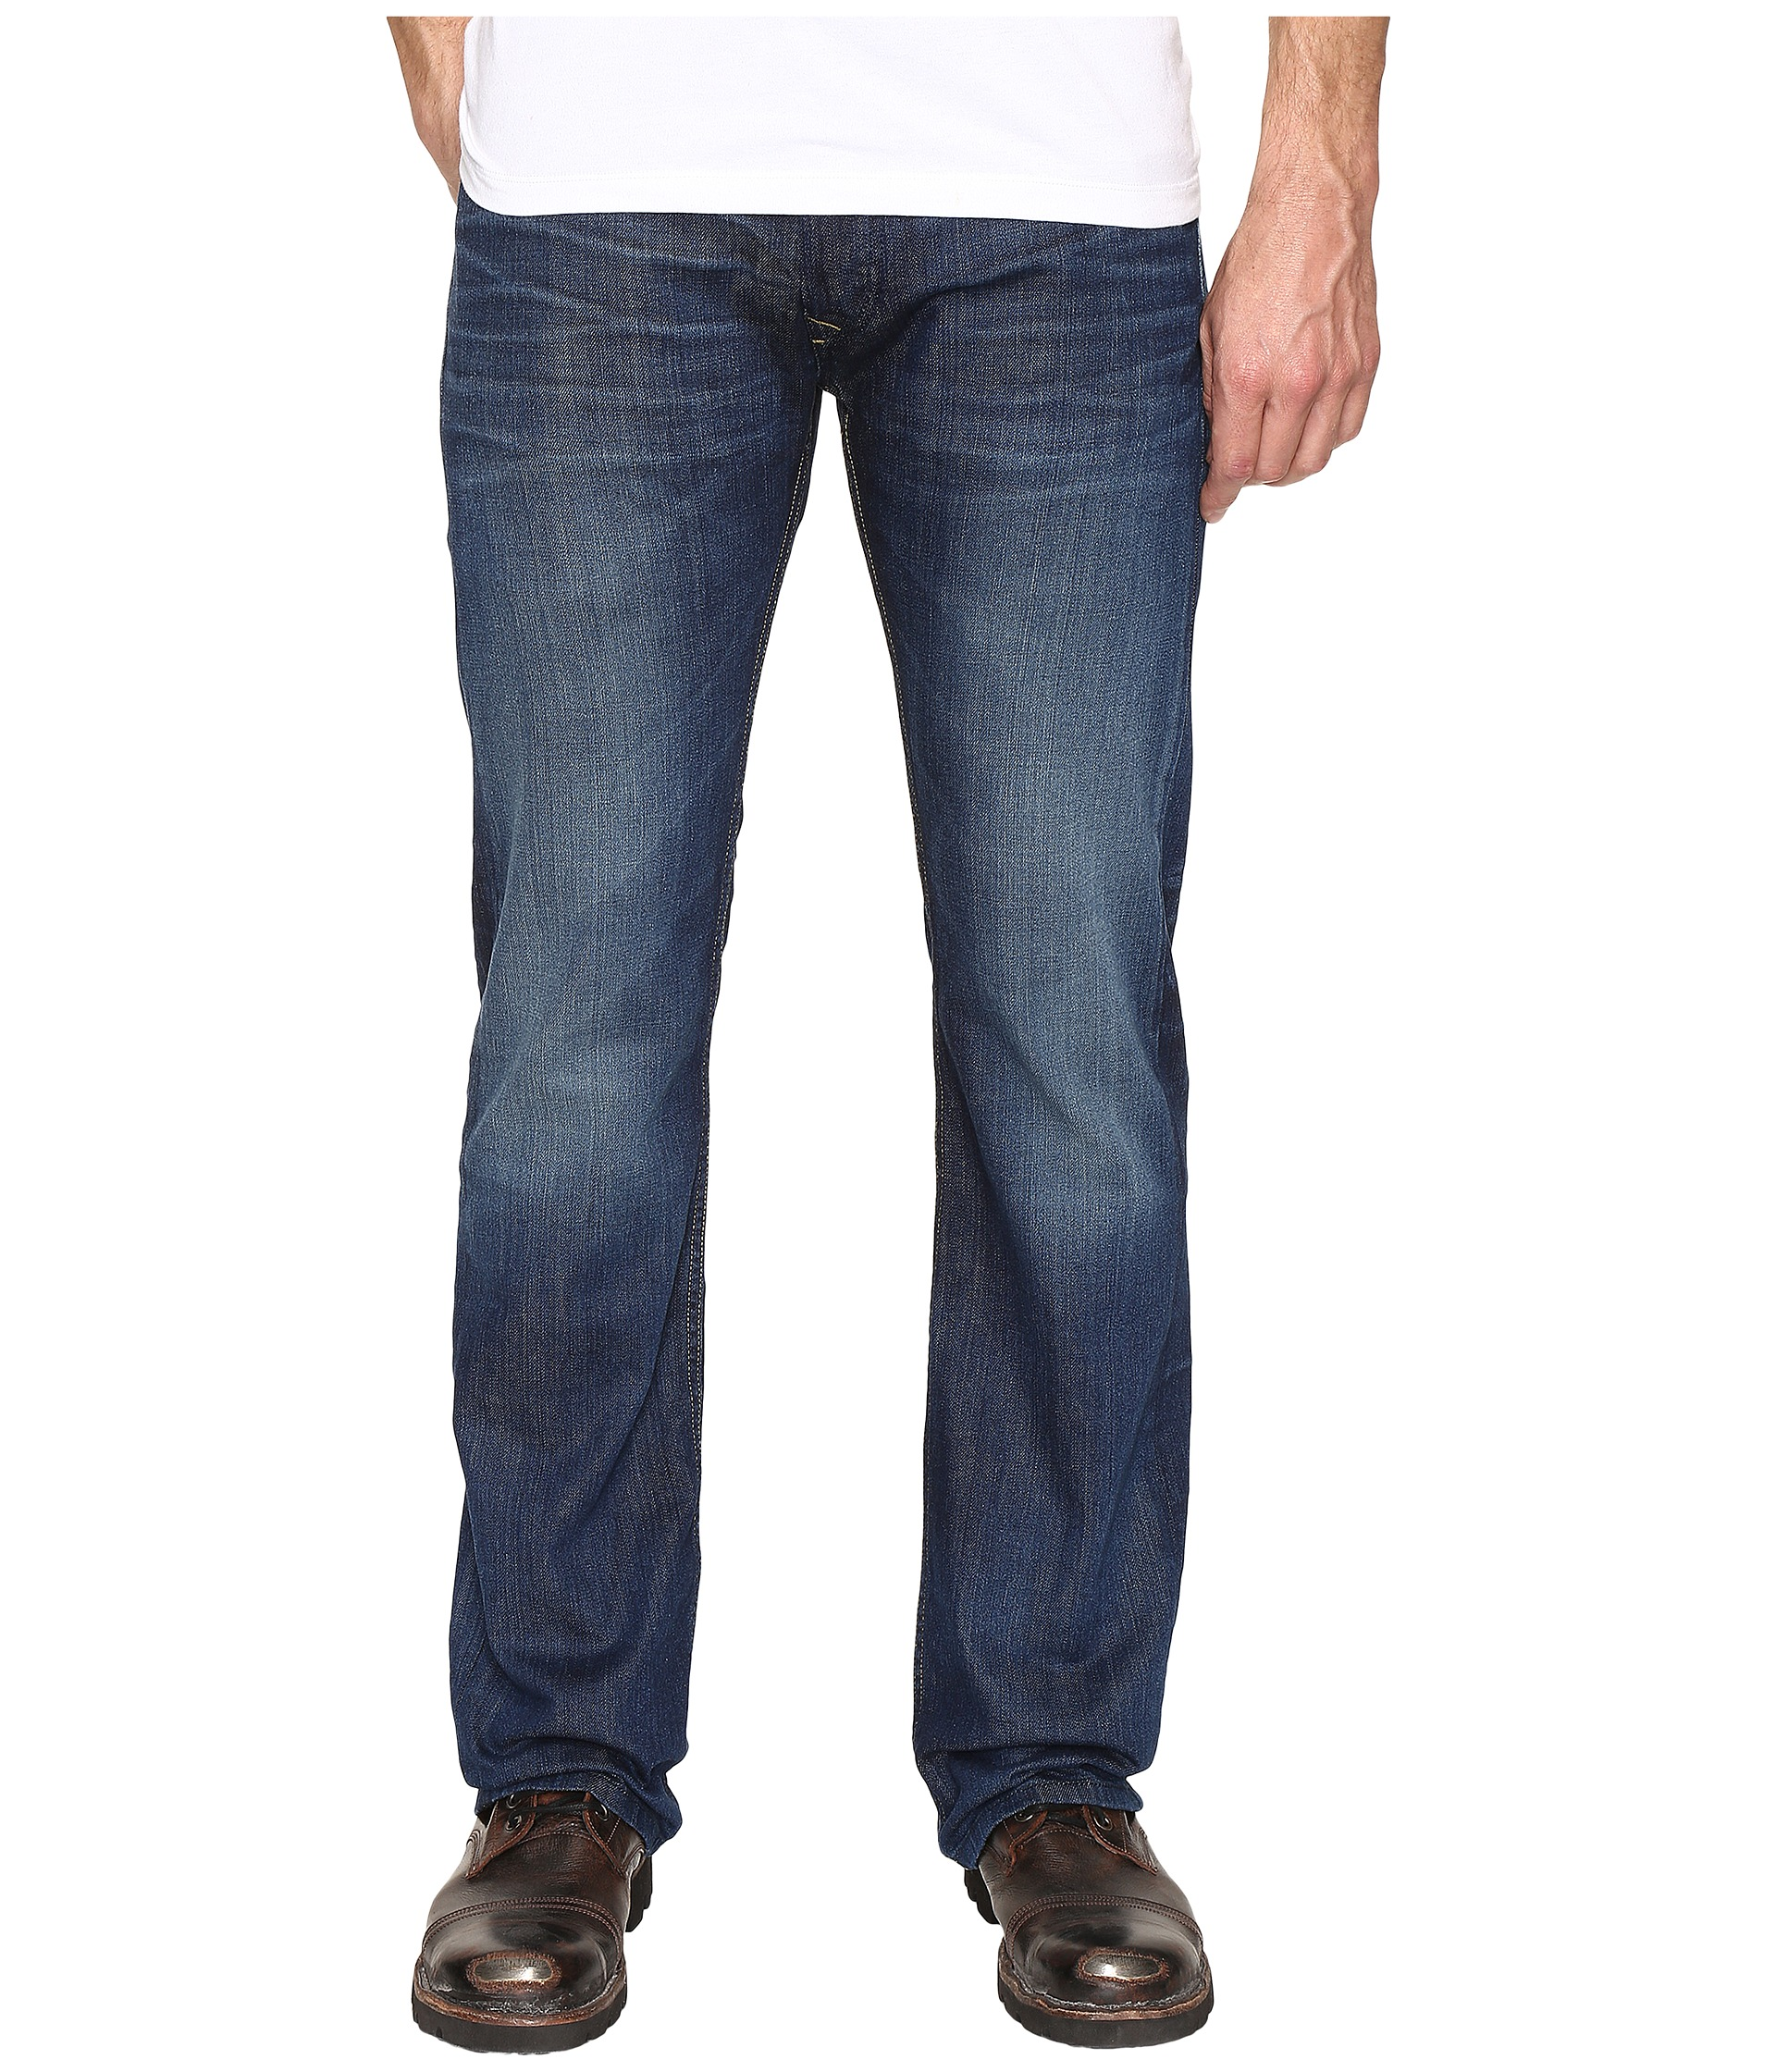 693b2be9f7b Mens Uggs With Jeans